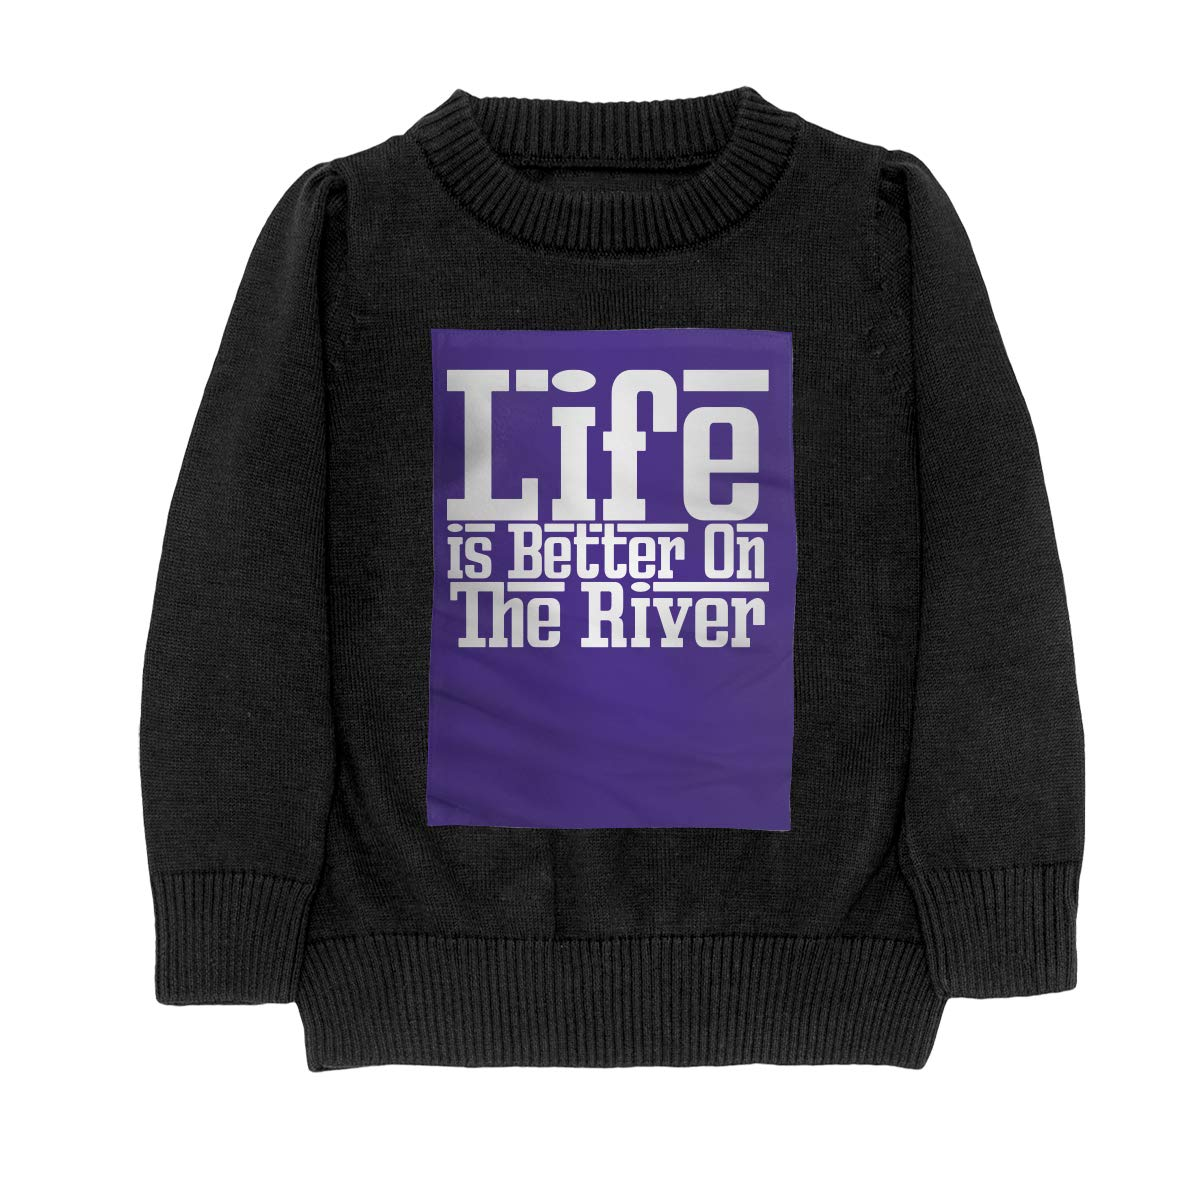 Life is Better On The River Style Teenager Boys Girls Unisex Sweater Keep Warm